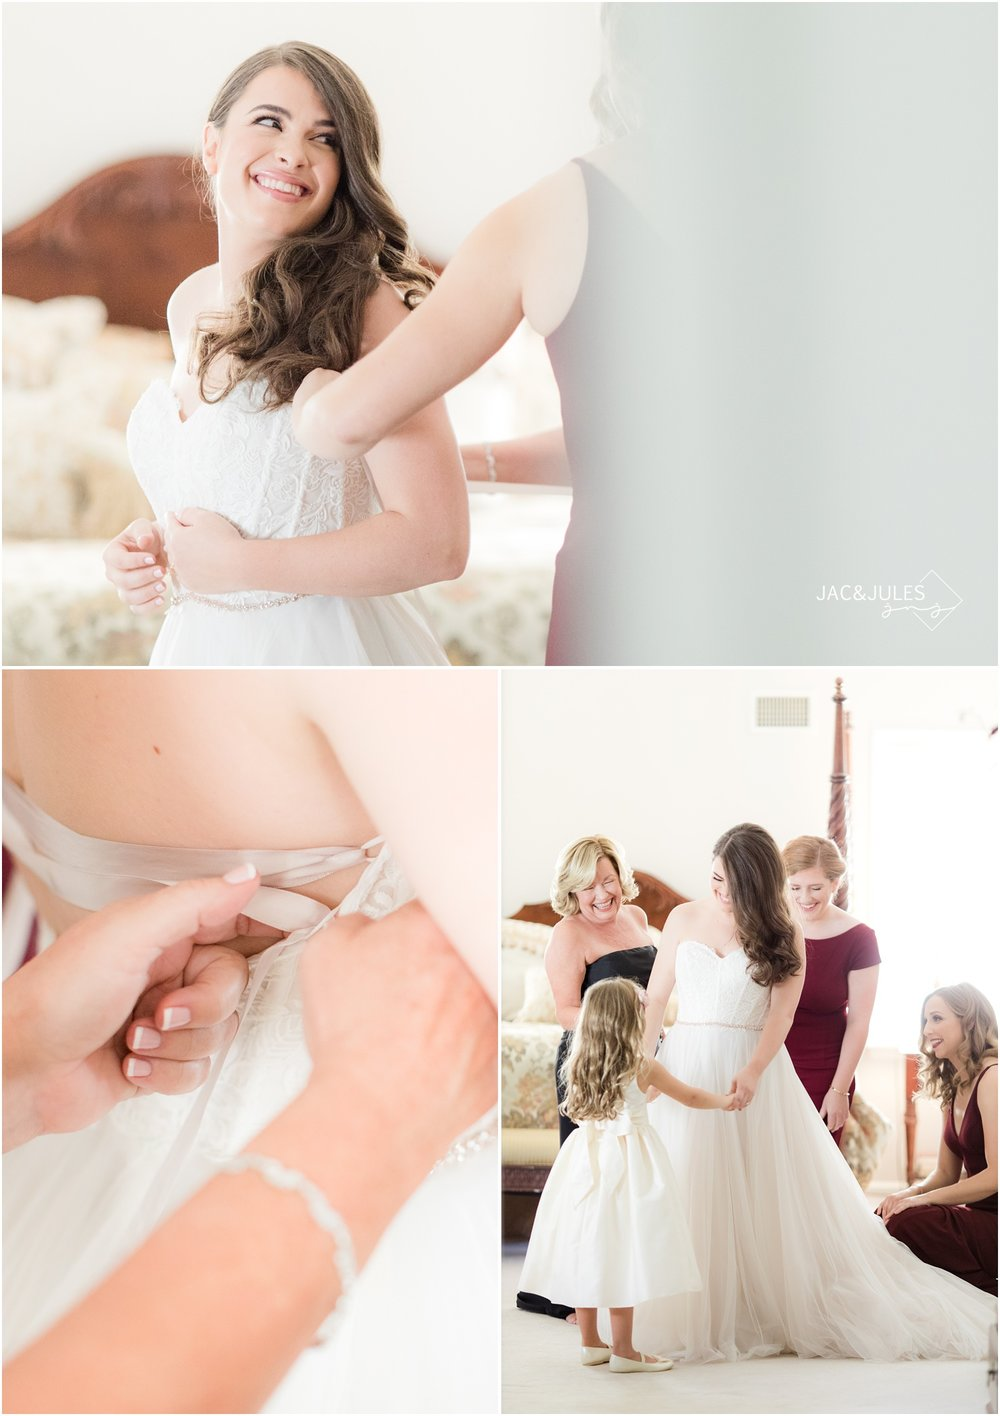 Bride getting in her wedding dress at home in Manasquan, NJ.